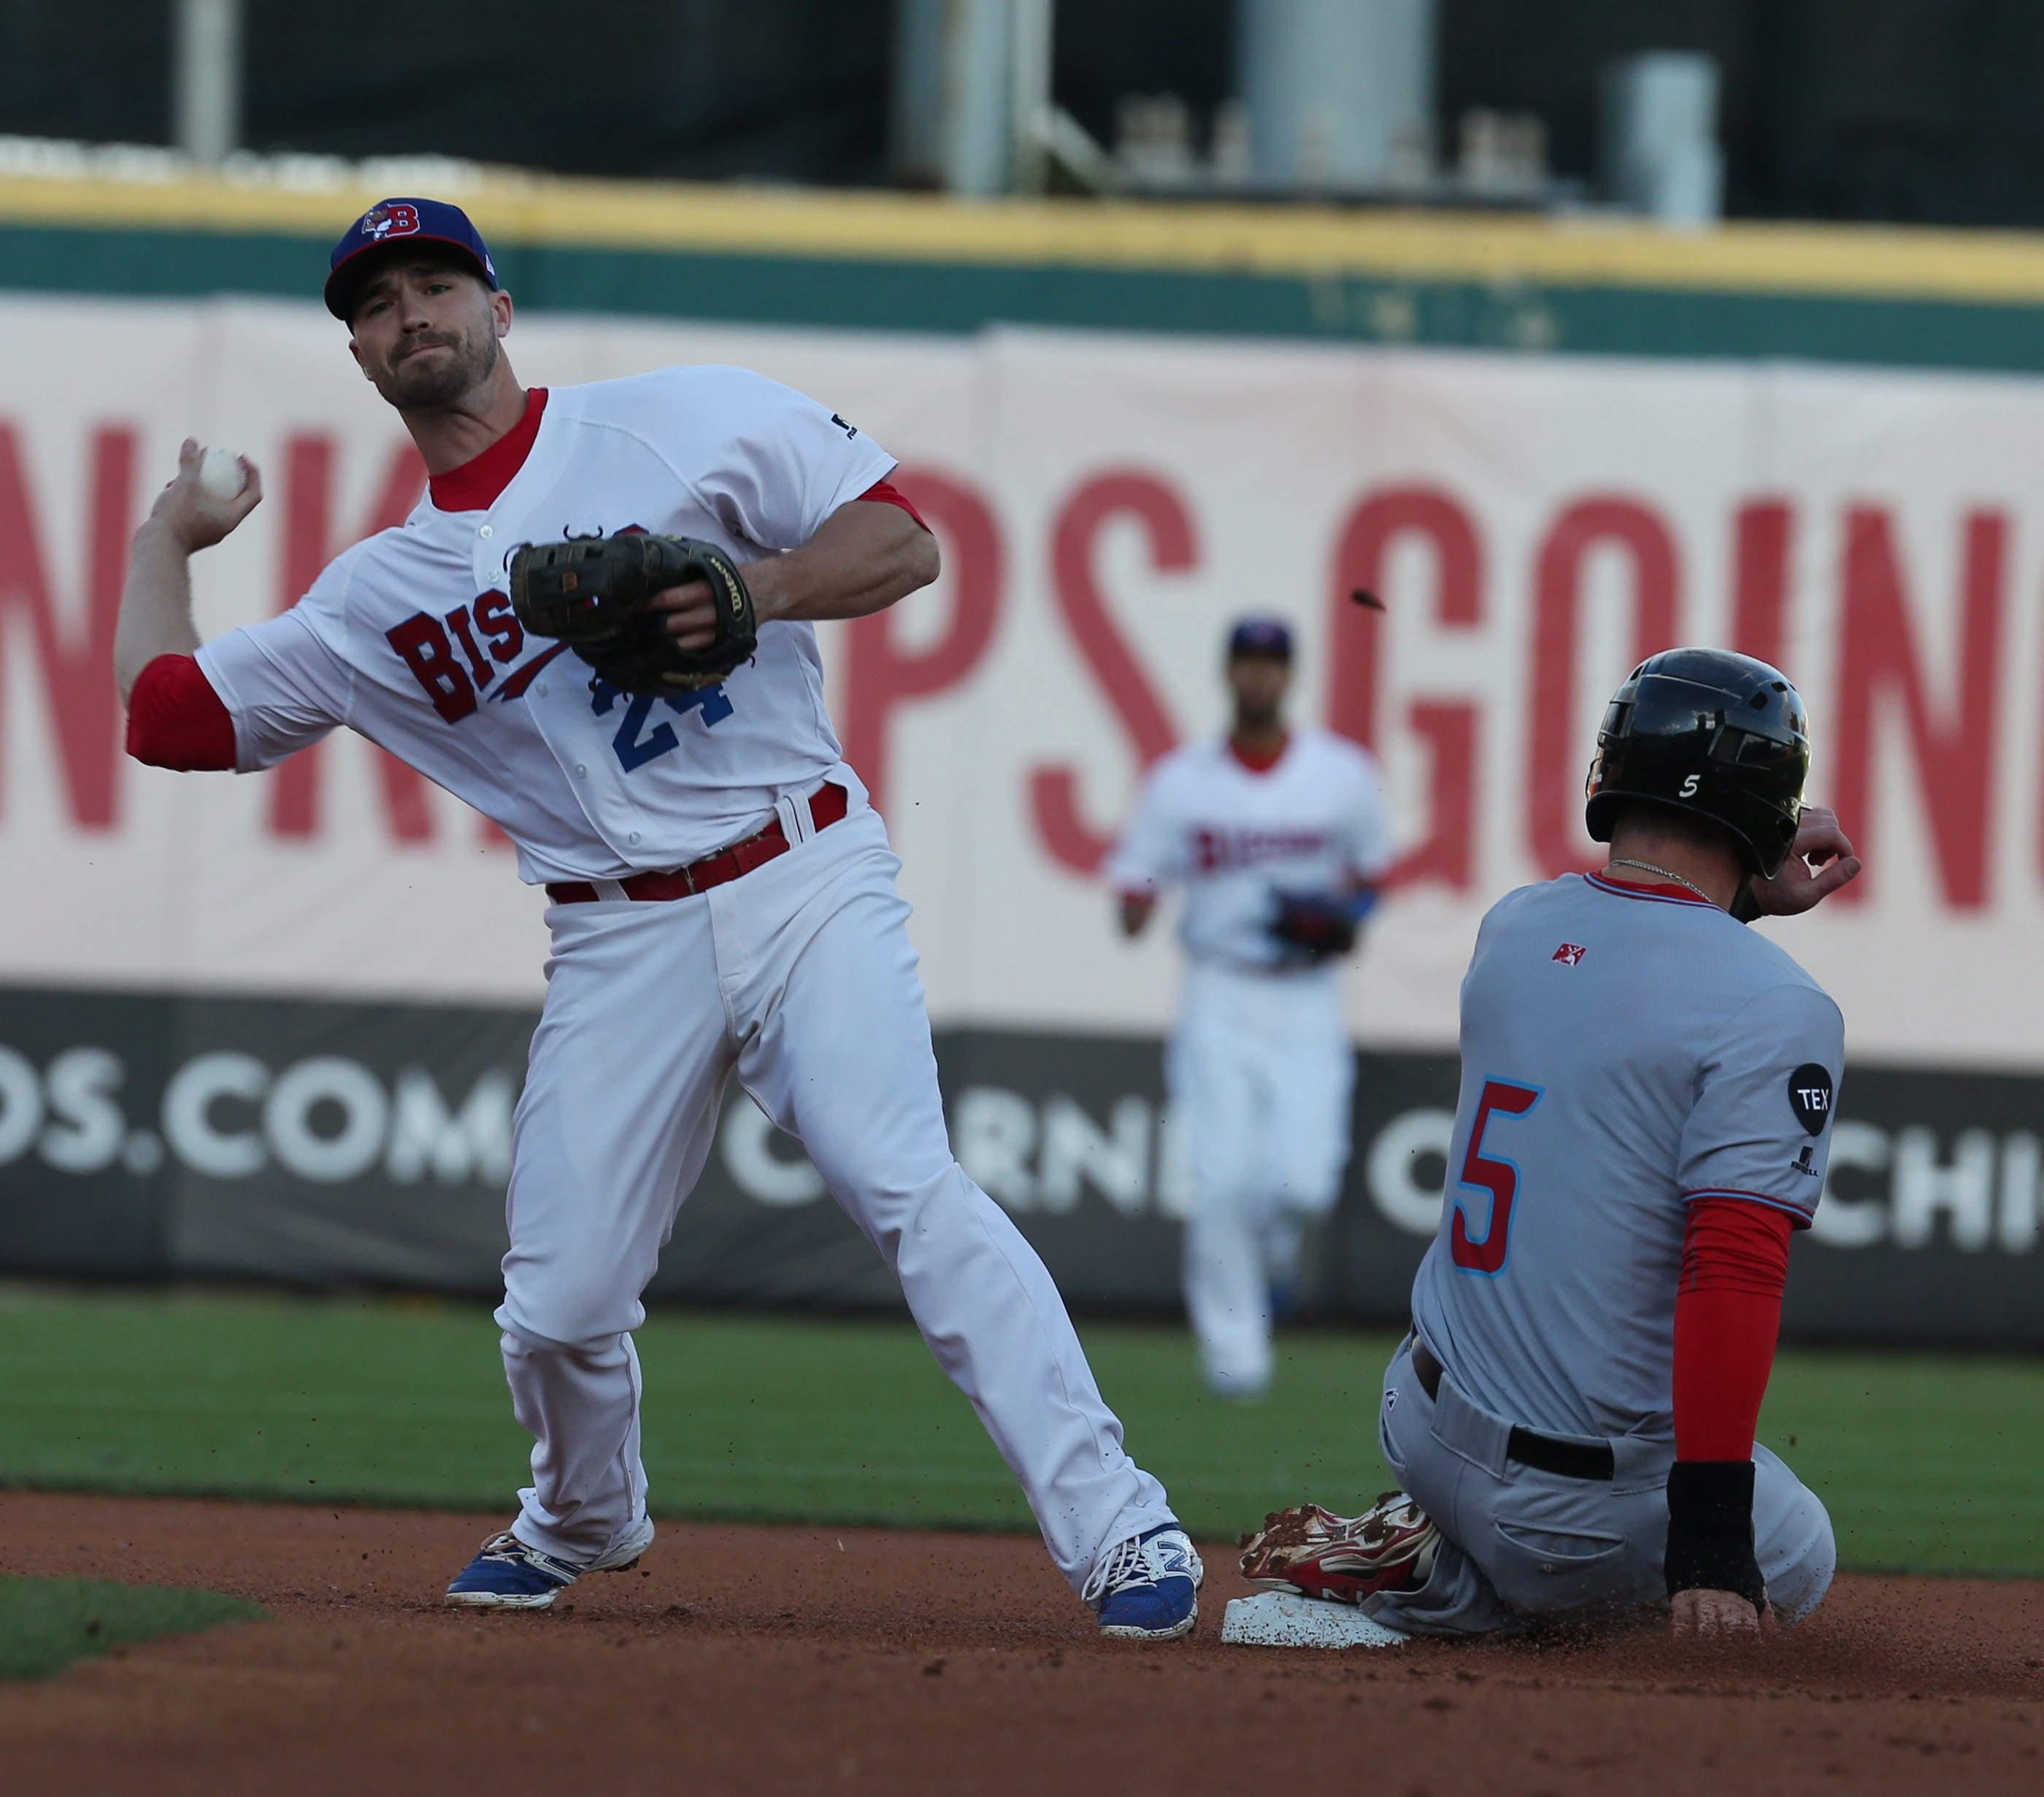 Buffalo Bisons' second baseman Jon Berti turns a double play on Syracuse's Jason Martinson in the first inning at Coca-Cola Field in Buffalo,NY on Wednesday, July 22, 2015.  (James P. McCoy/ Buffalo News)